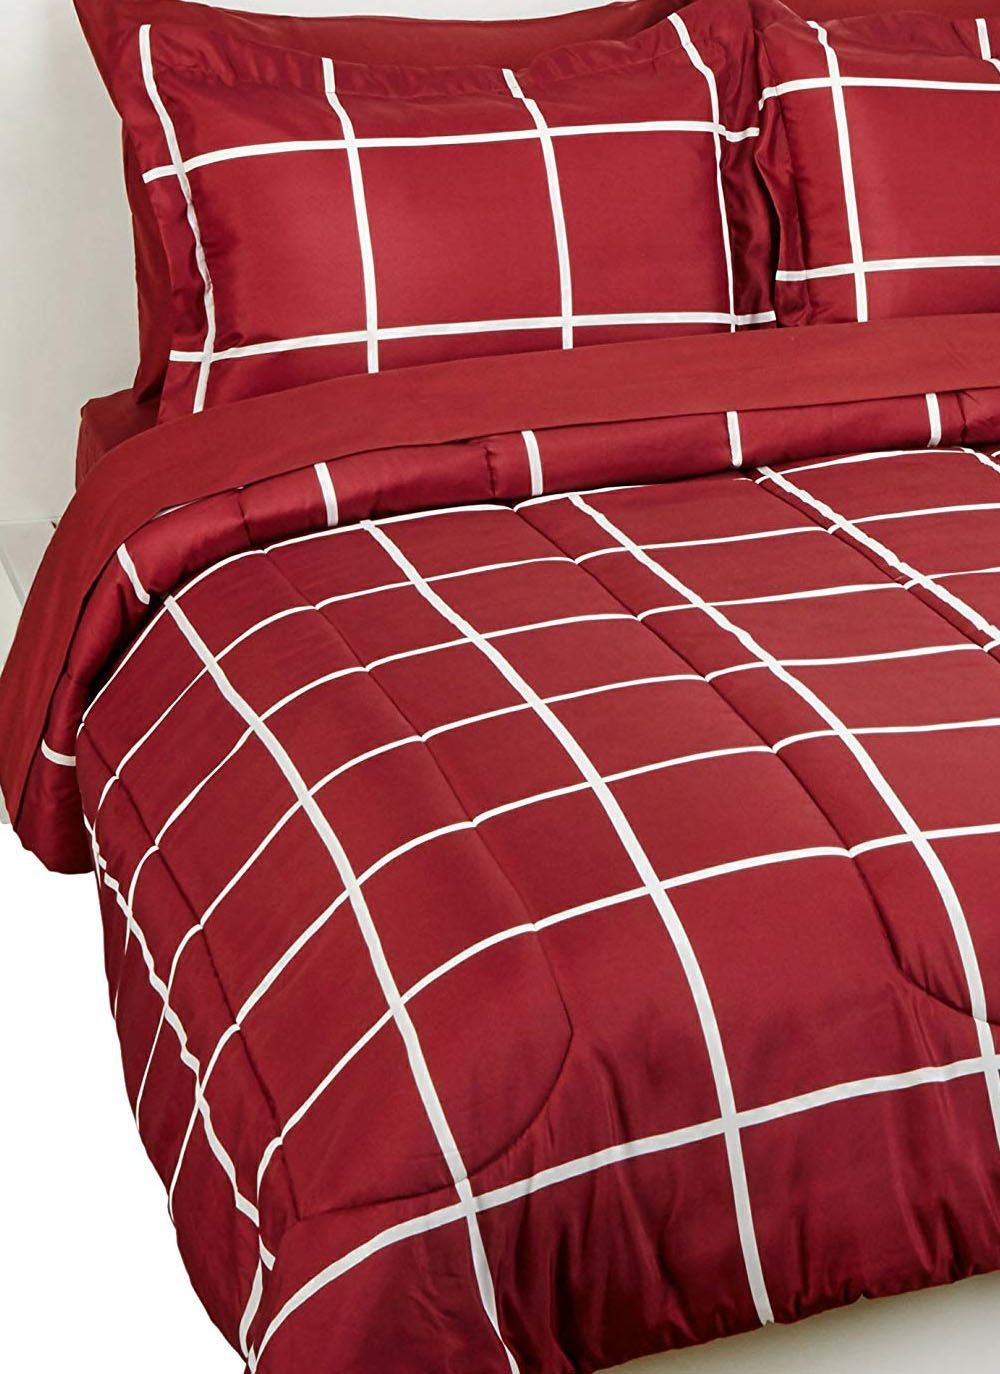 Amazon Sofa Bed Sheets 5 Best Bedding Sets Top Rated Bed In A Bag Sets